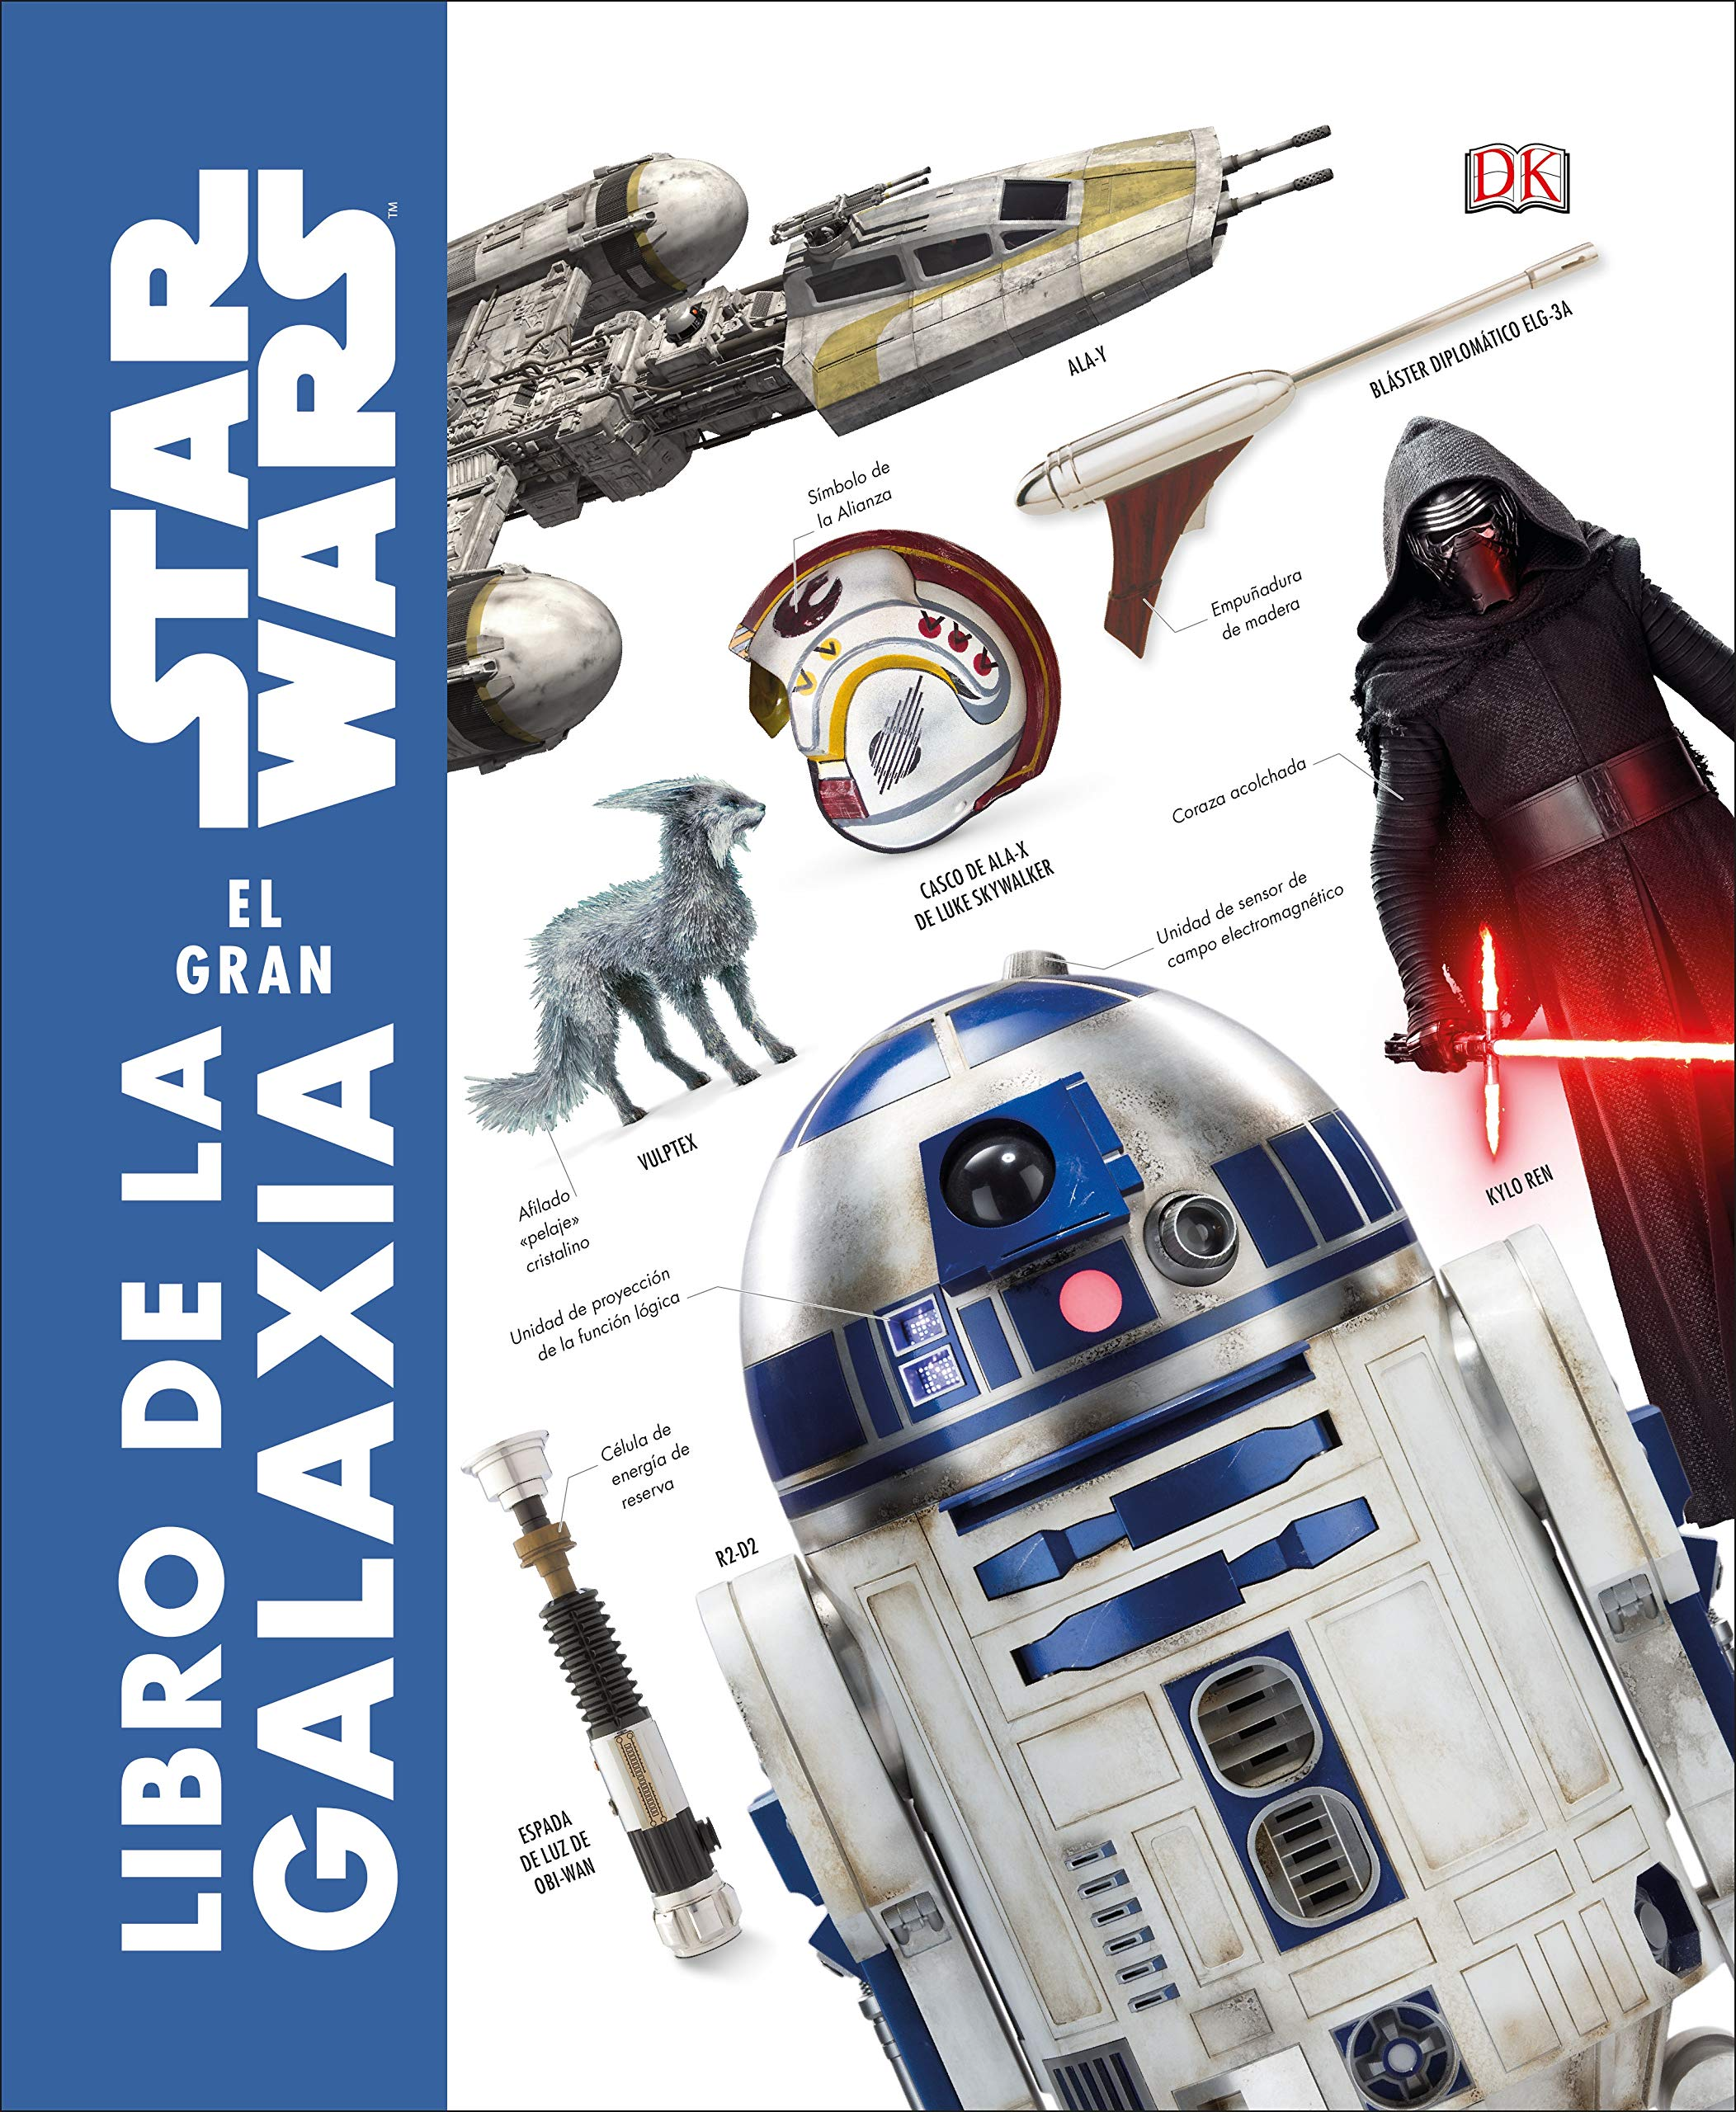 Star Wars: El gran libro de la galaxia (Spanish Edition) (Spanish) Hardcover – October 30, 2018